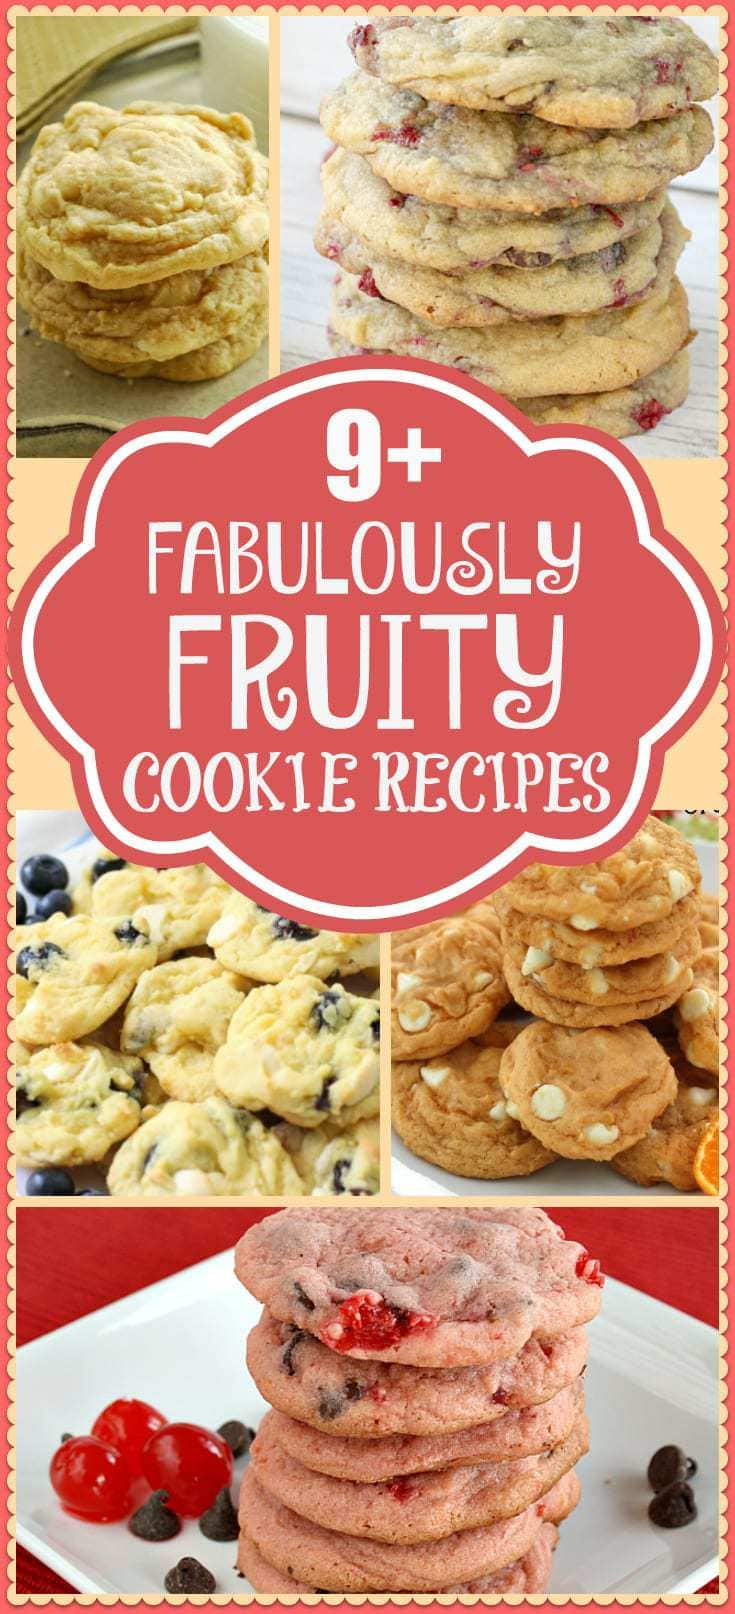 Fans of fruity cookie recipes will love this compilation! Amazing recipes for delicious cookies featuring all types of fruit.